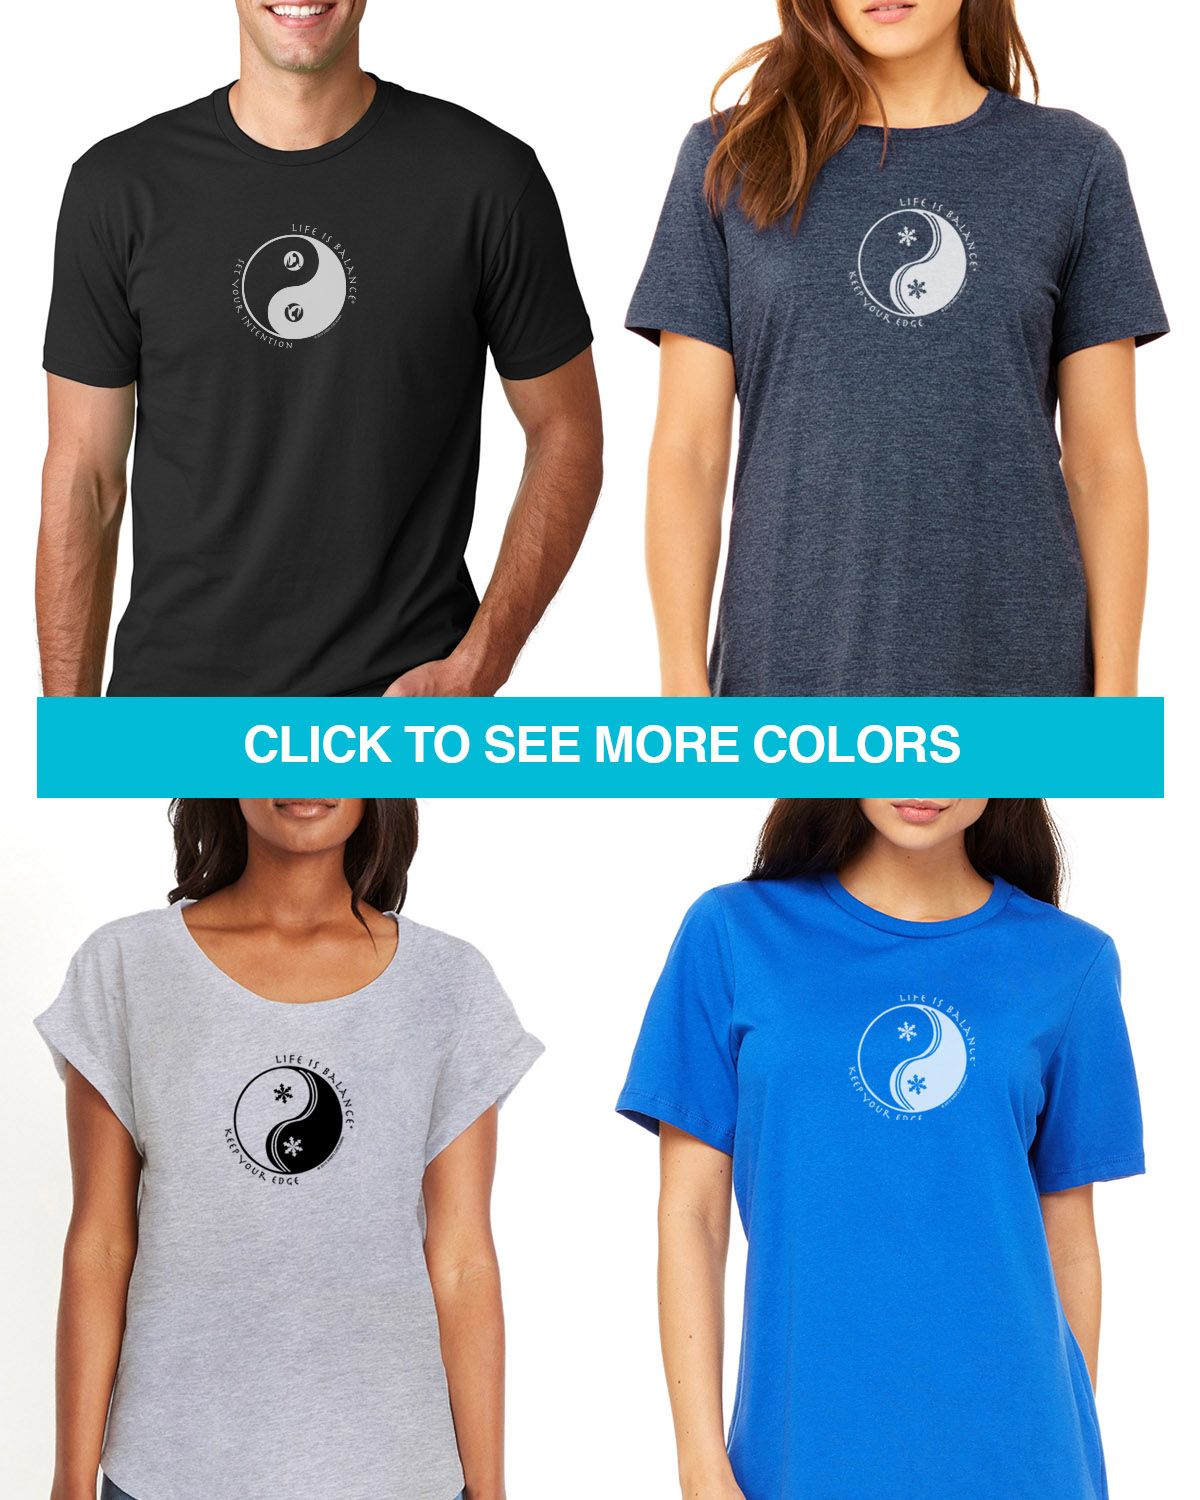 Women's & Men's short sleeve ski or snowboarding t-shirt